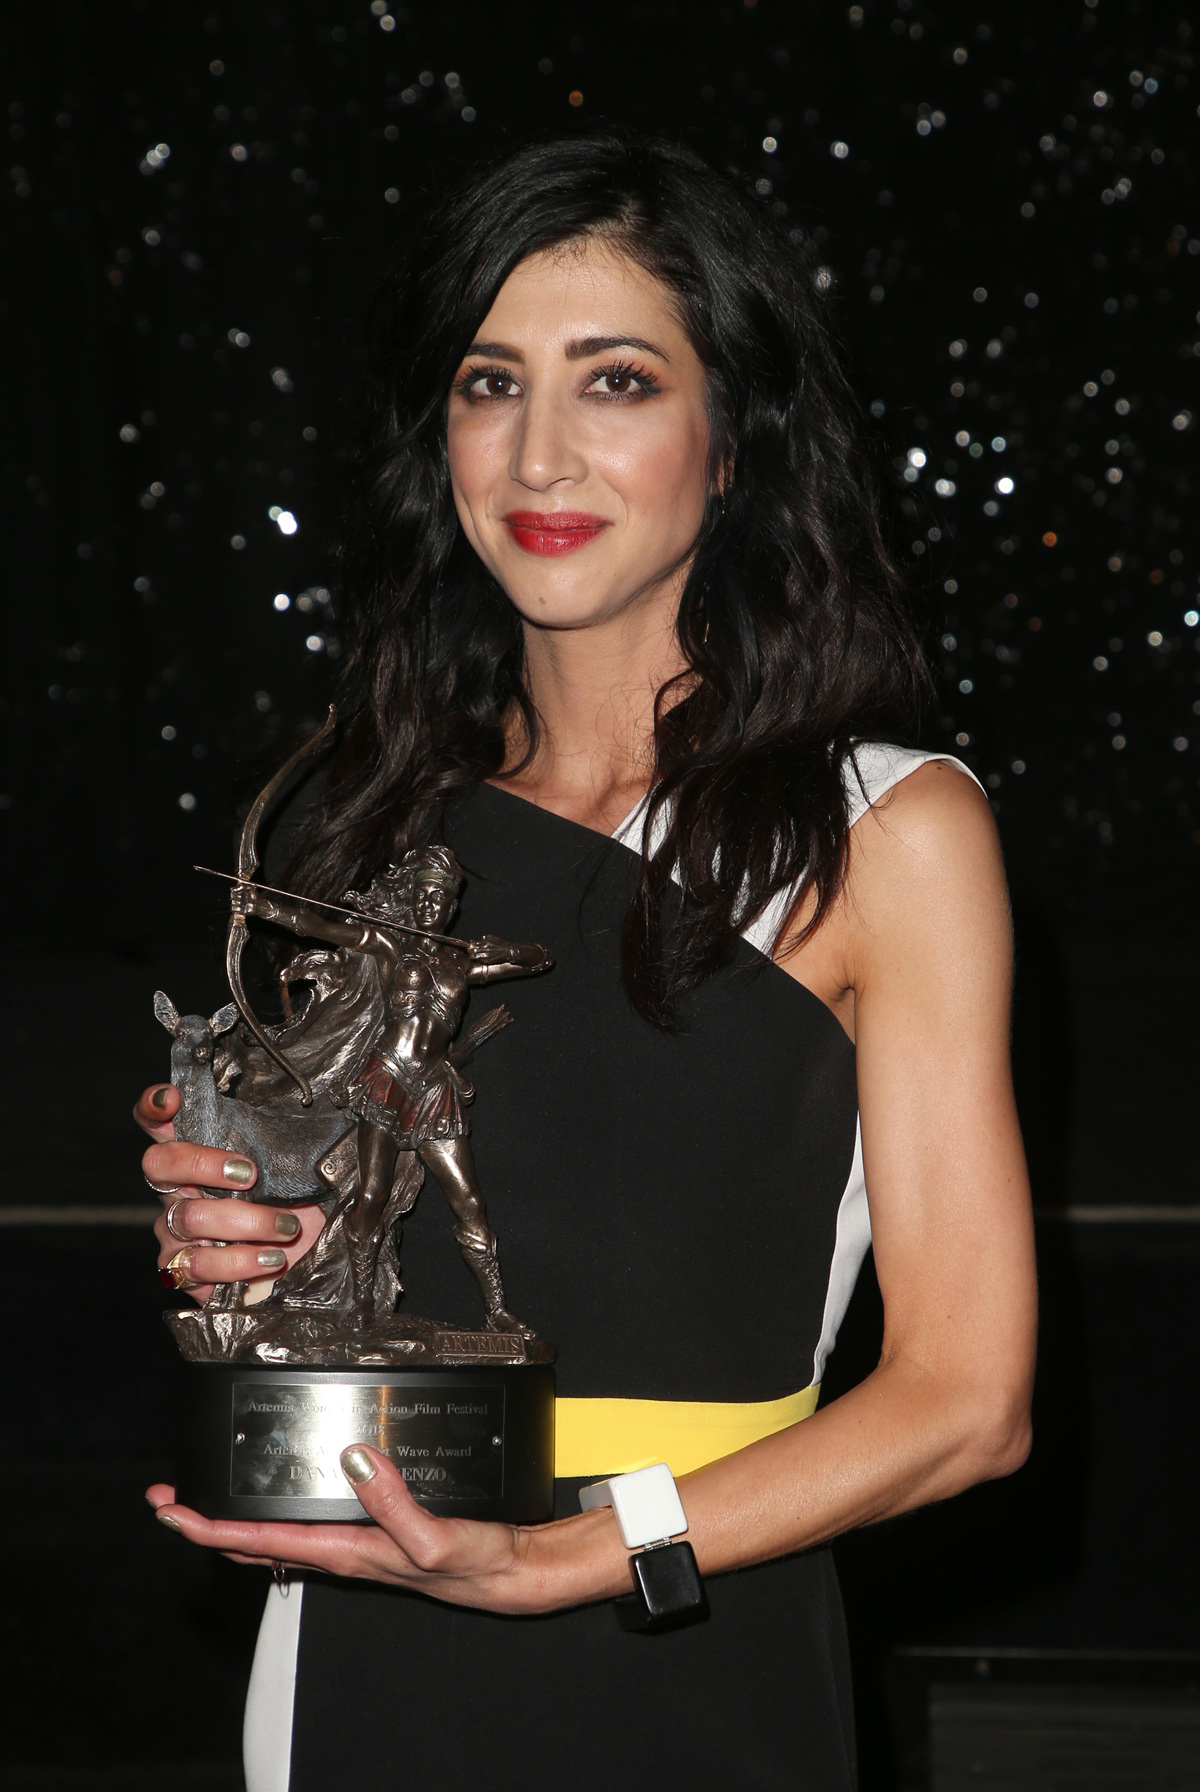 BEVERLY HILLS, CA - APRIL 26: Dana DeLorenzo, at the 2018 Artemis Awards Gala at the Ahrya Fine Arts Theater in Beverly Hills, California on April 26, 2018. Credit: Faye Sadou/MediaPunch